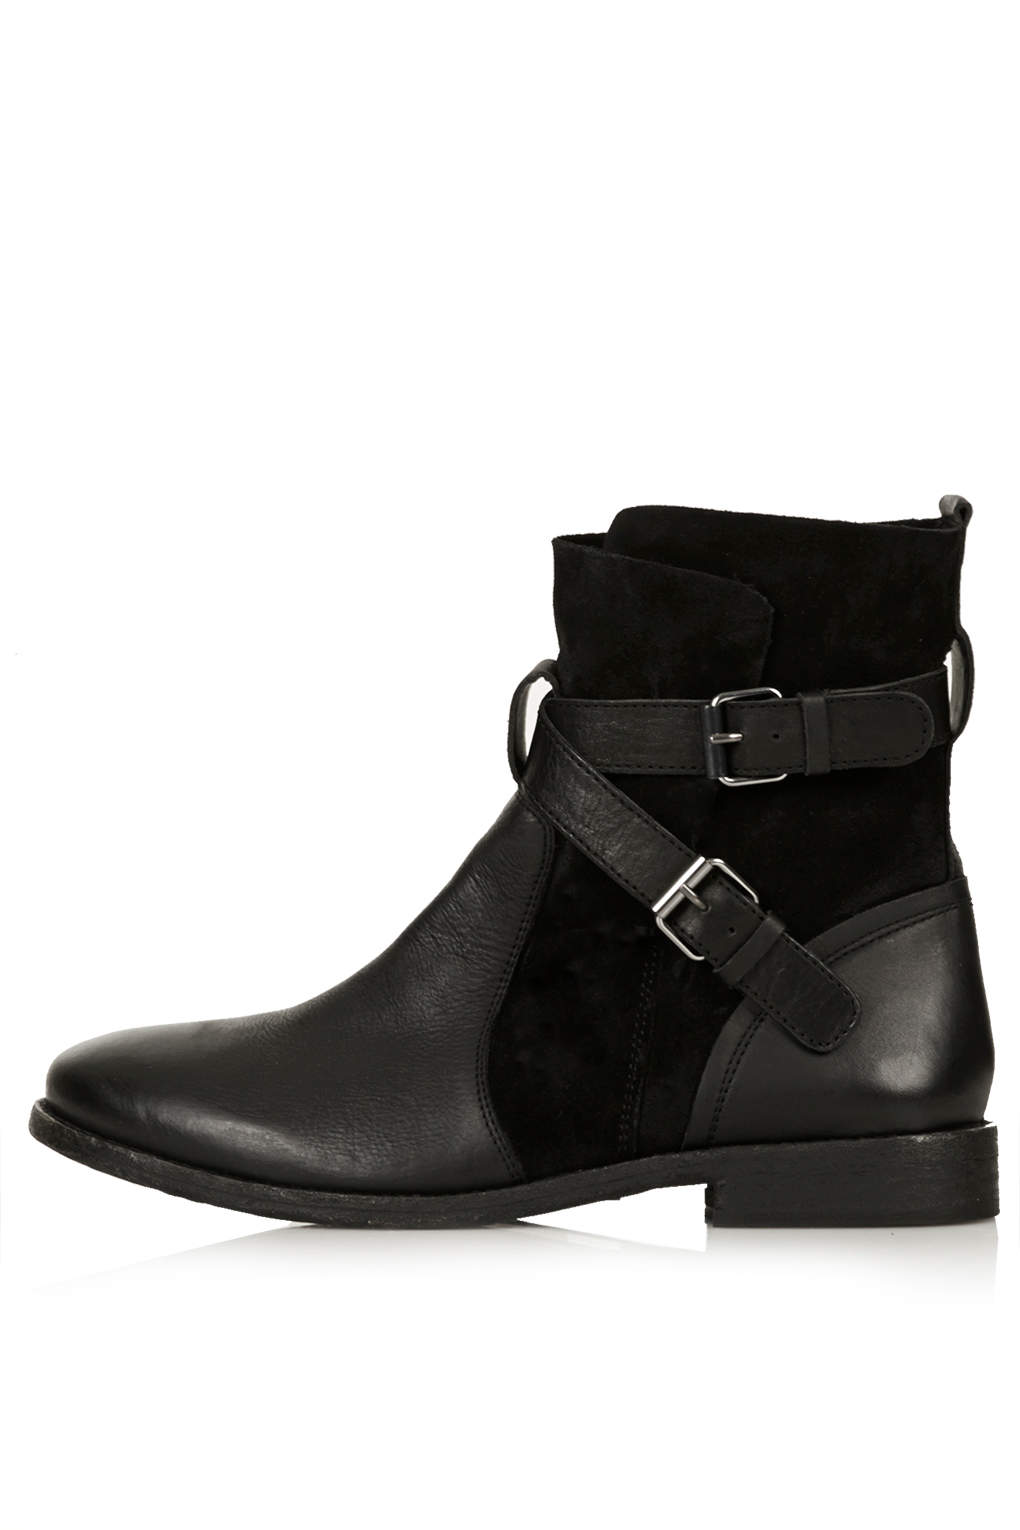 AYE Pirate Ankle Boots - Boots - Shoes